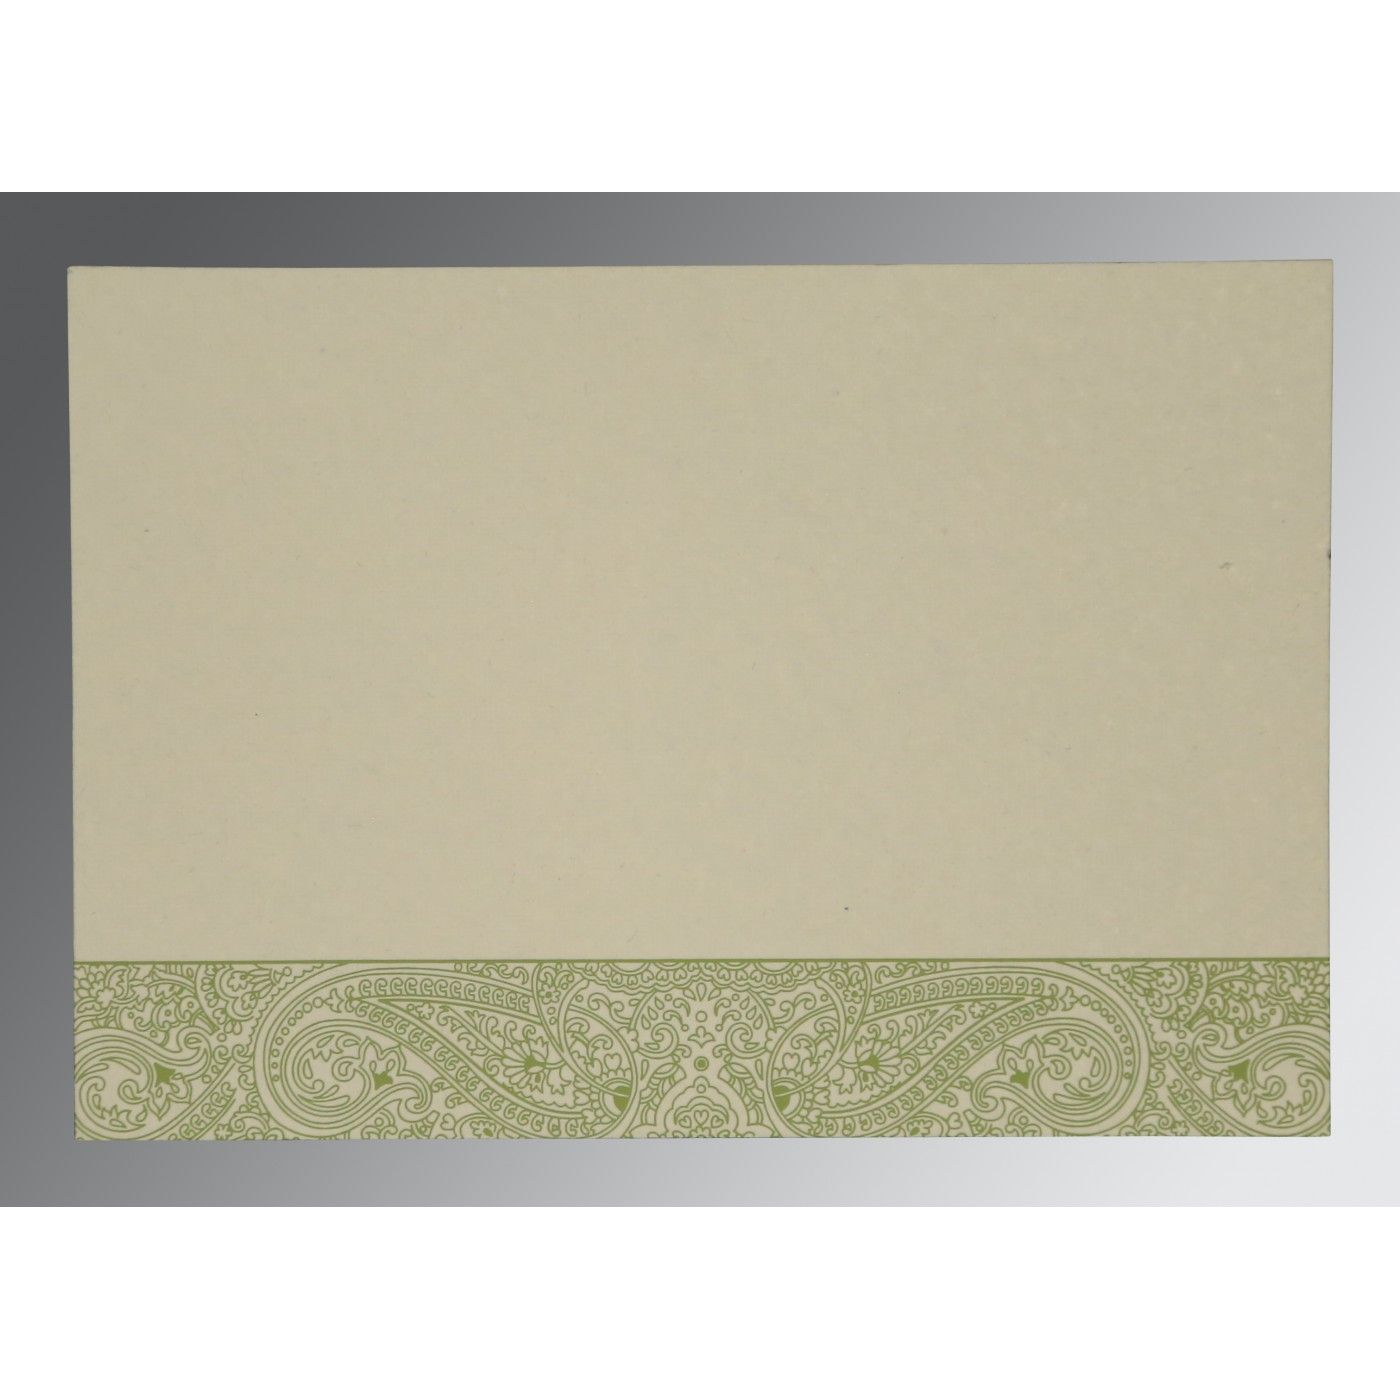 DARK OLIVE GREEN HANDMADE COTTON EMBOSSED WEDDING CARD : CD-8234C - IndianWeddingCards